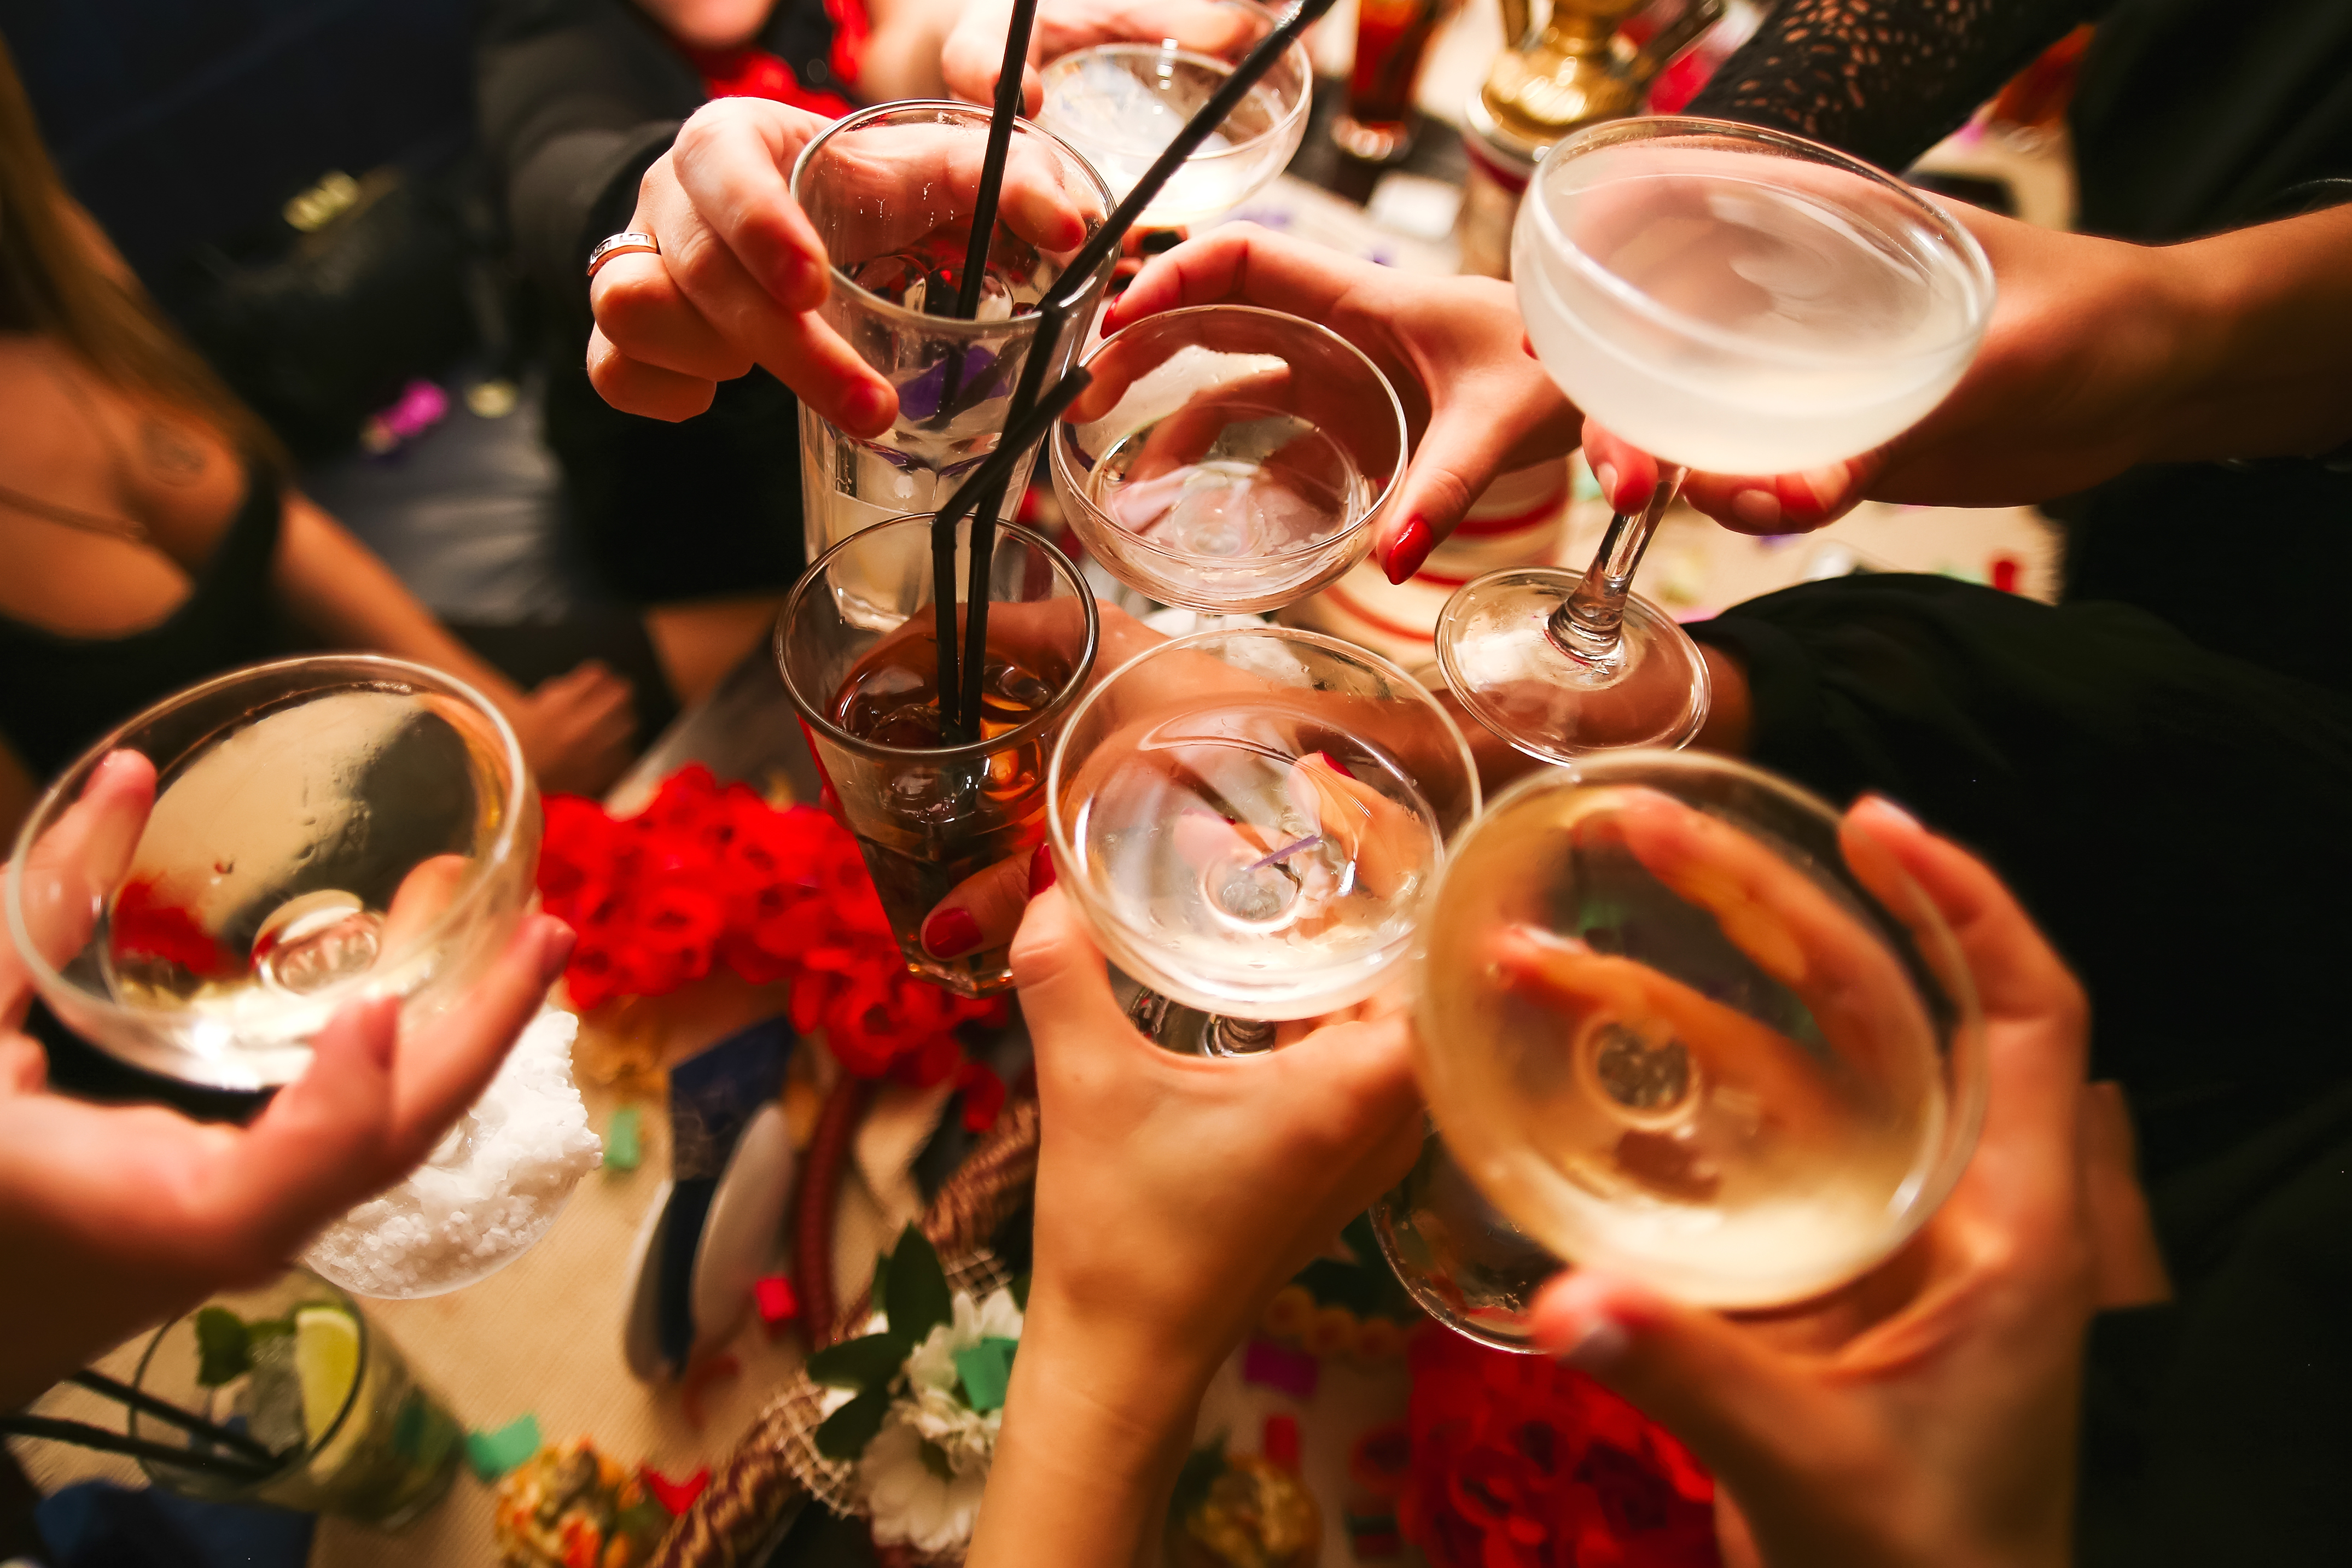 Clinking glasses with alcohol and toasting party